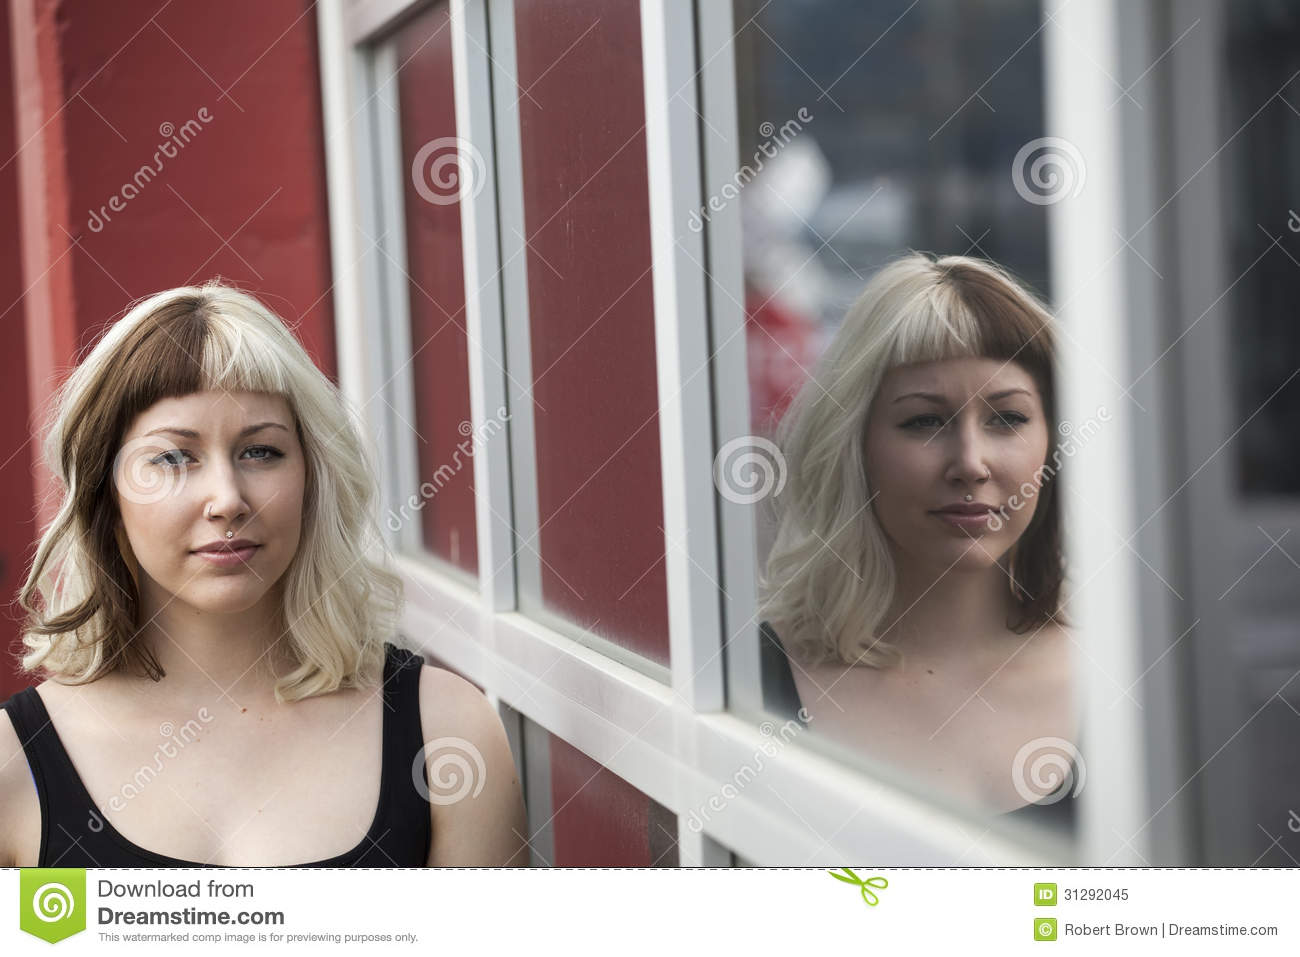 Beautiful Young Woman with Her Reflection